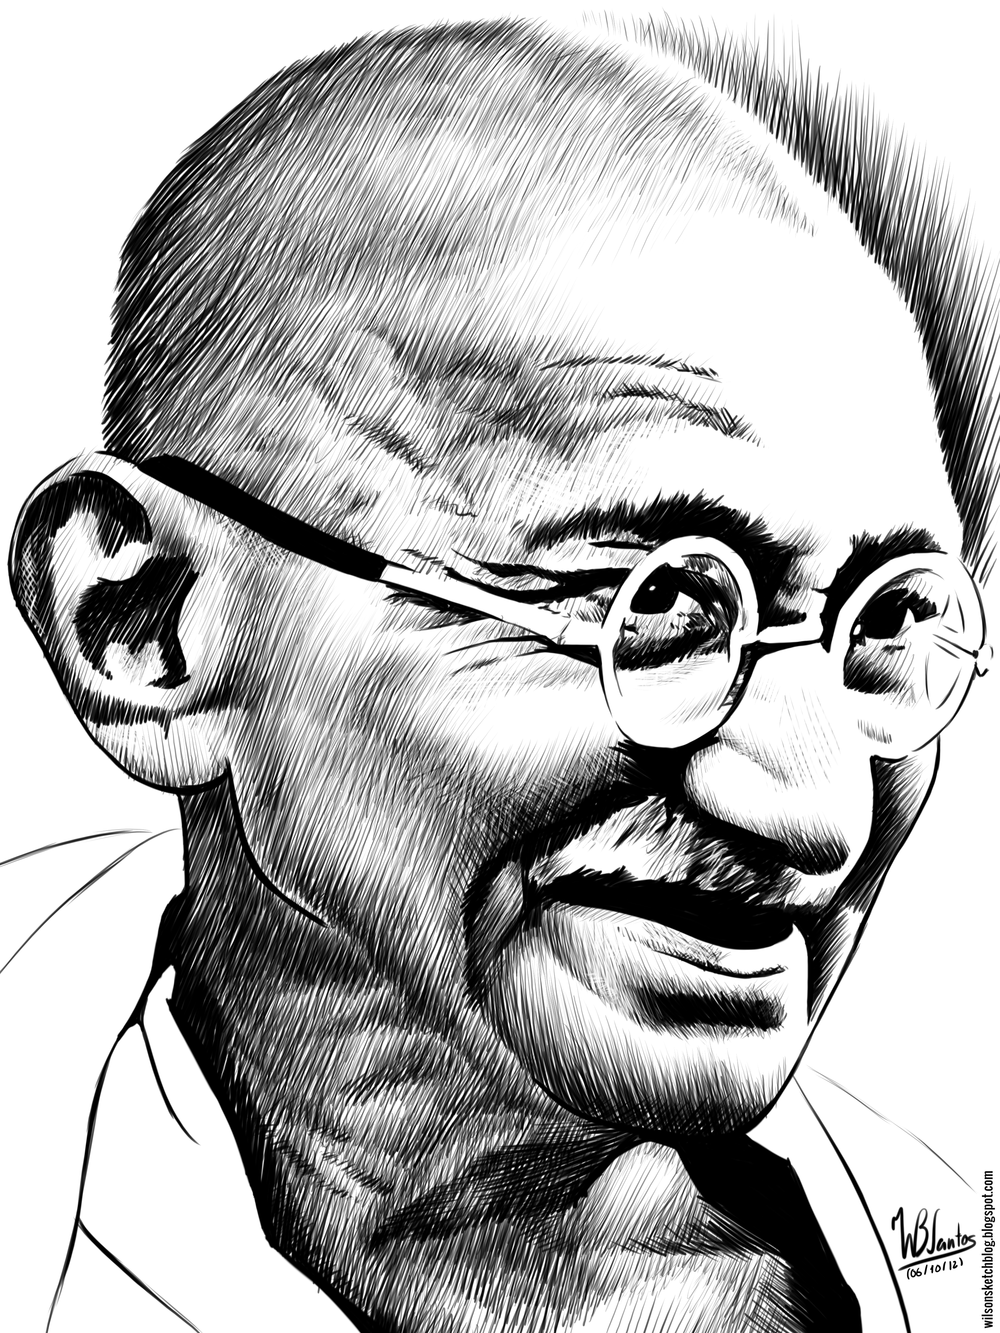 Ink drawing of Mahatma Gandhi.